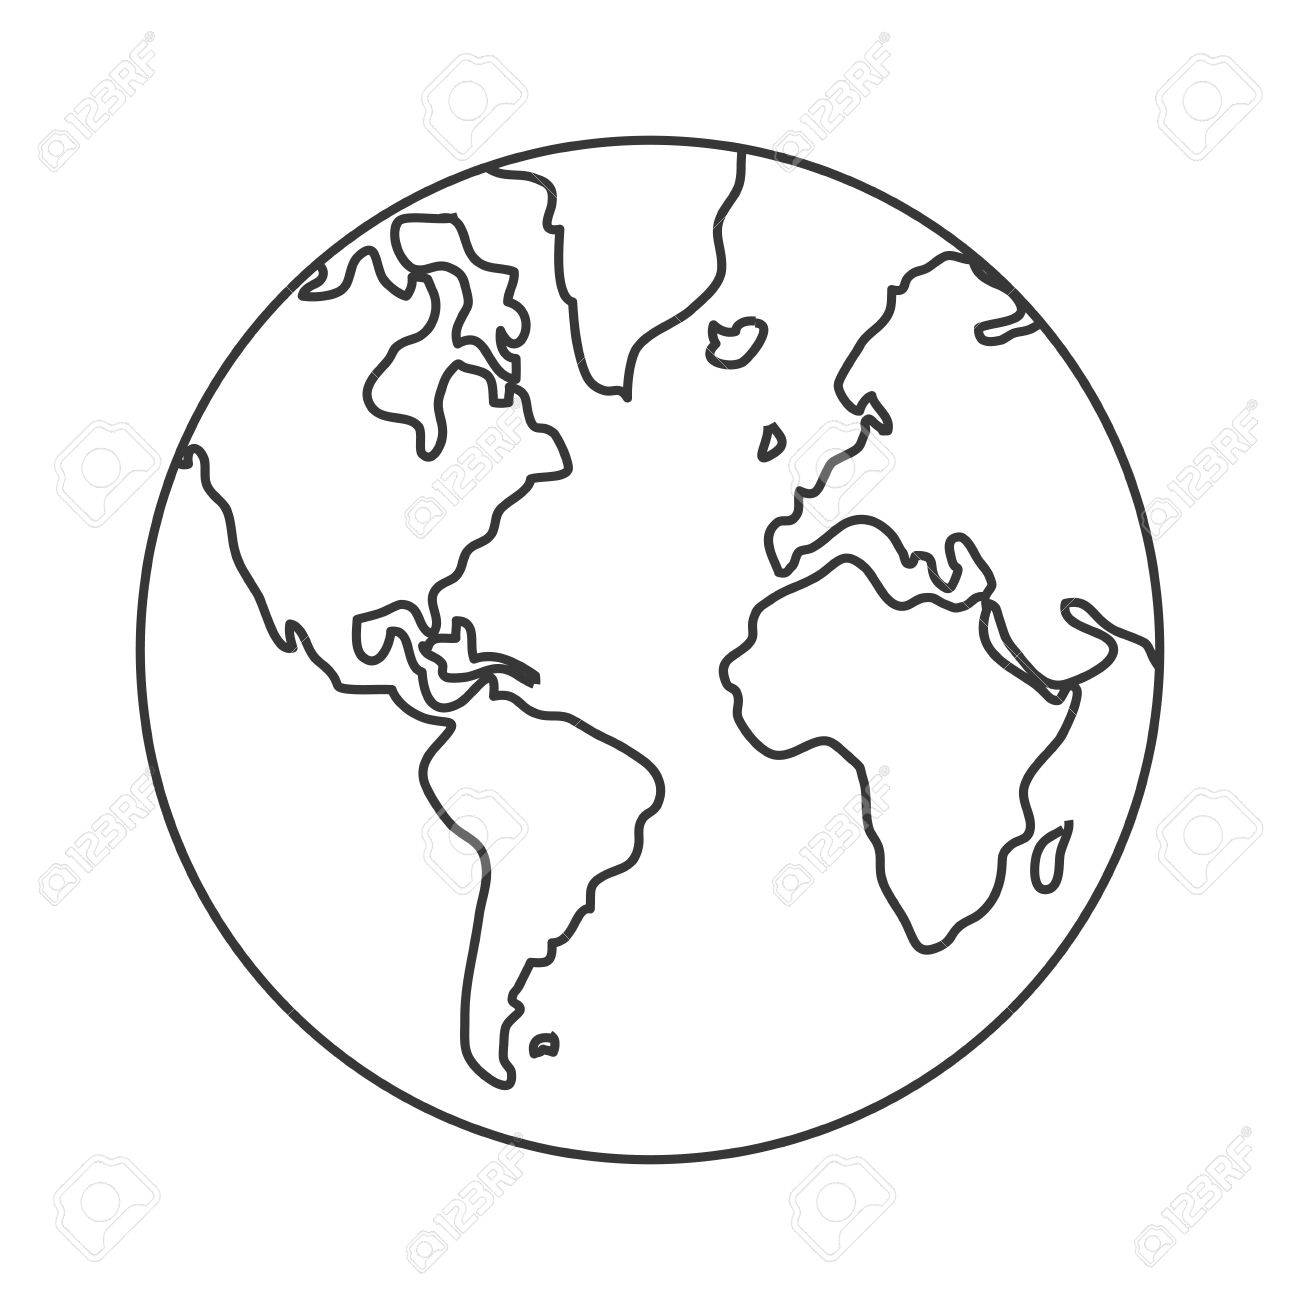 1300x1300 Simple Line Design Earth Globe With Distinction Between Water